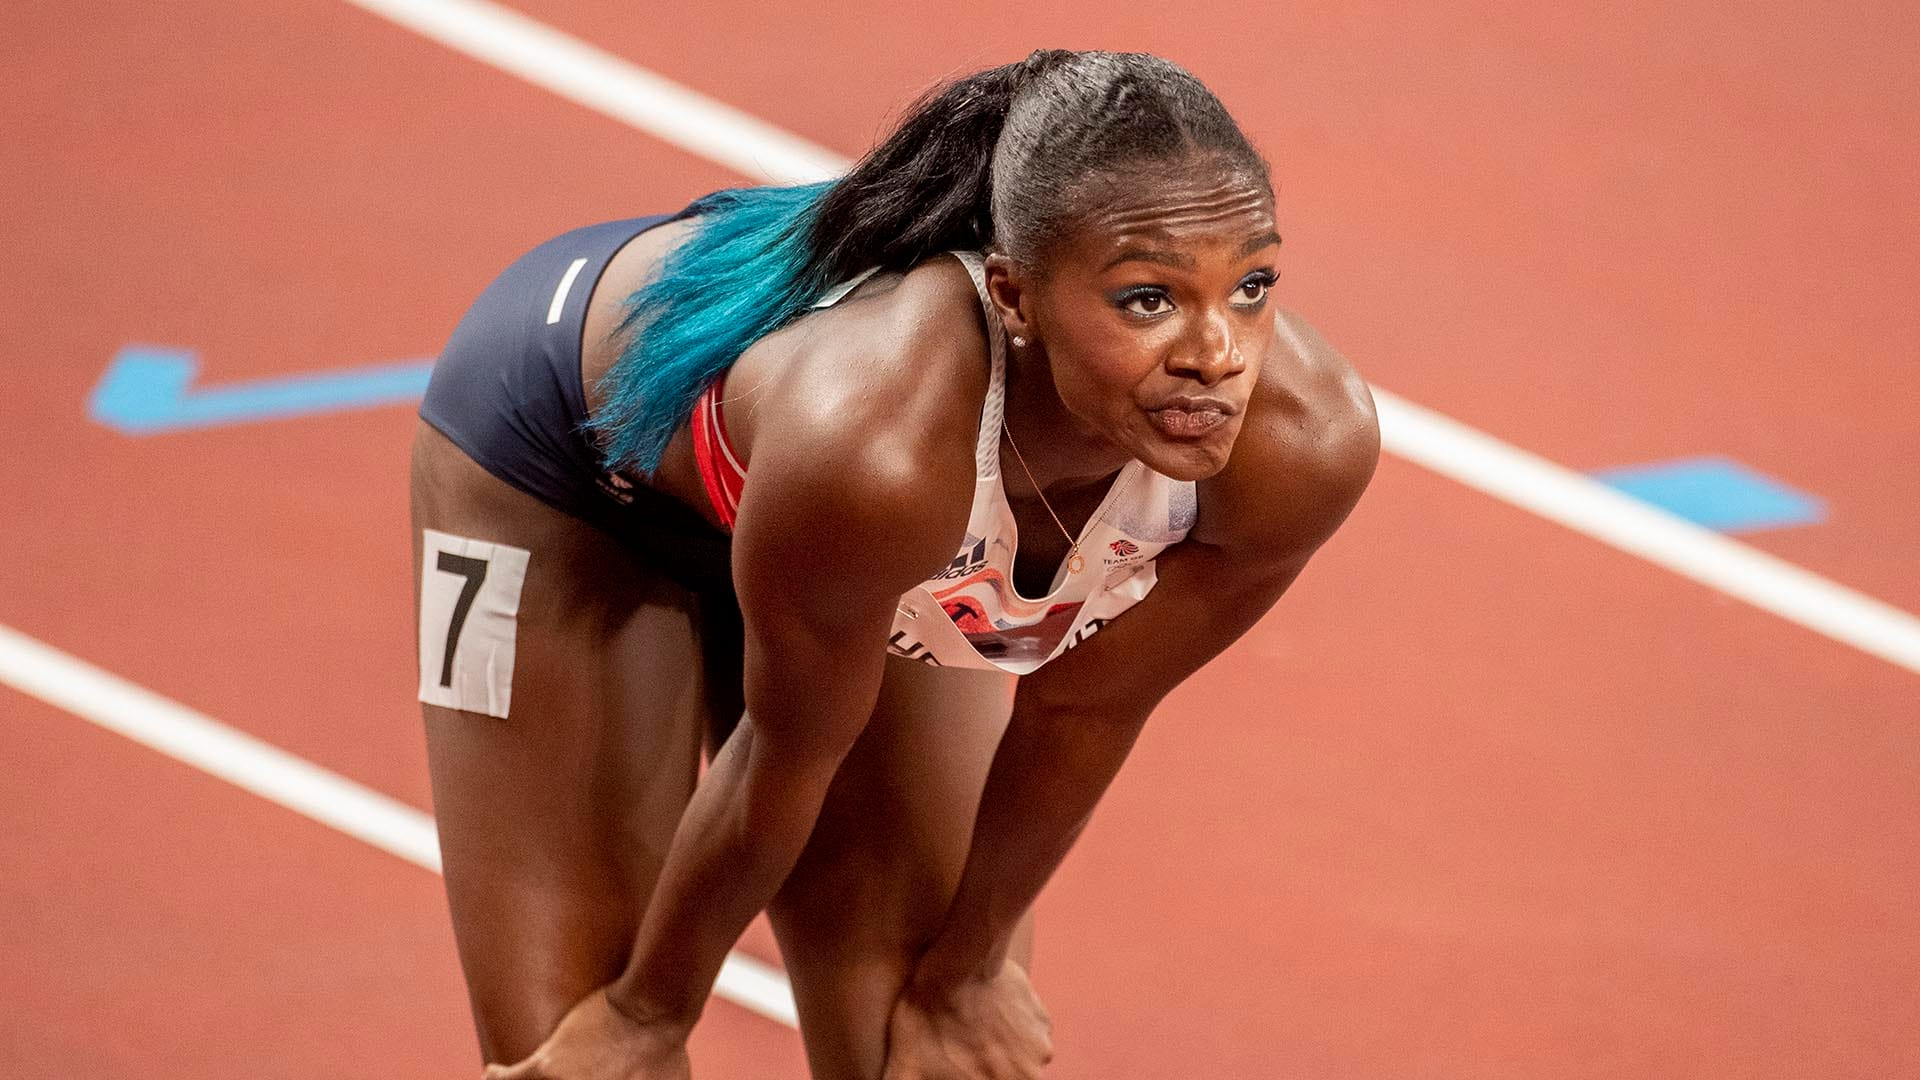 Britain's Asher-Smith Out of Games Due to Injury